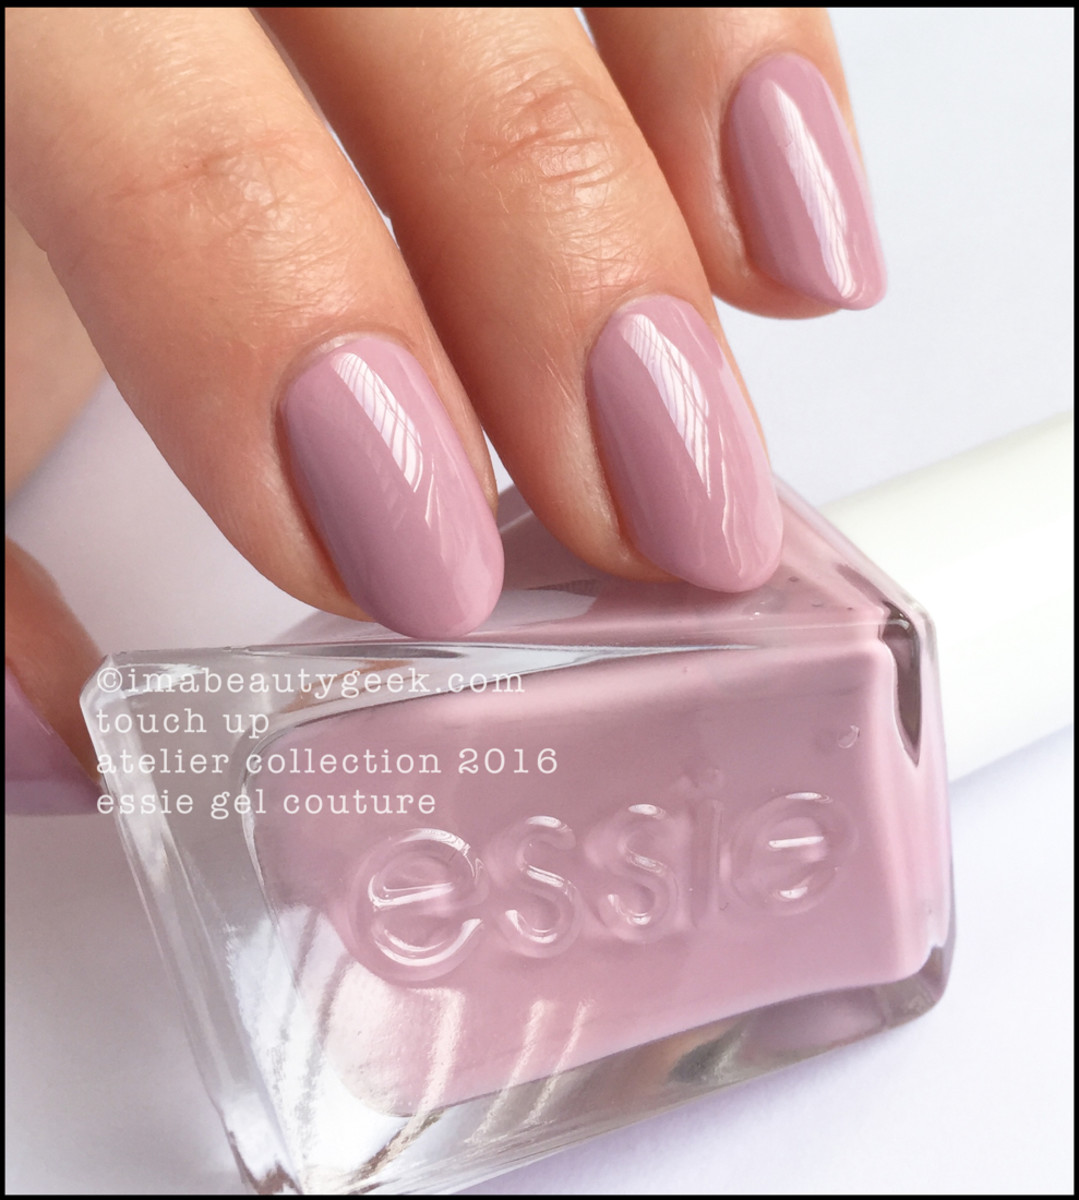 Essie Touch Up_Essie Gel Couture Swatches Review 2016